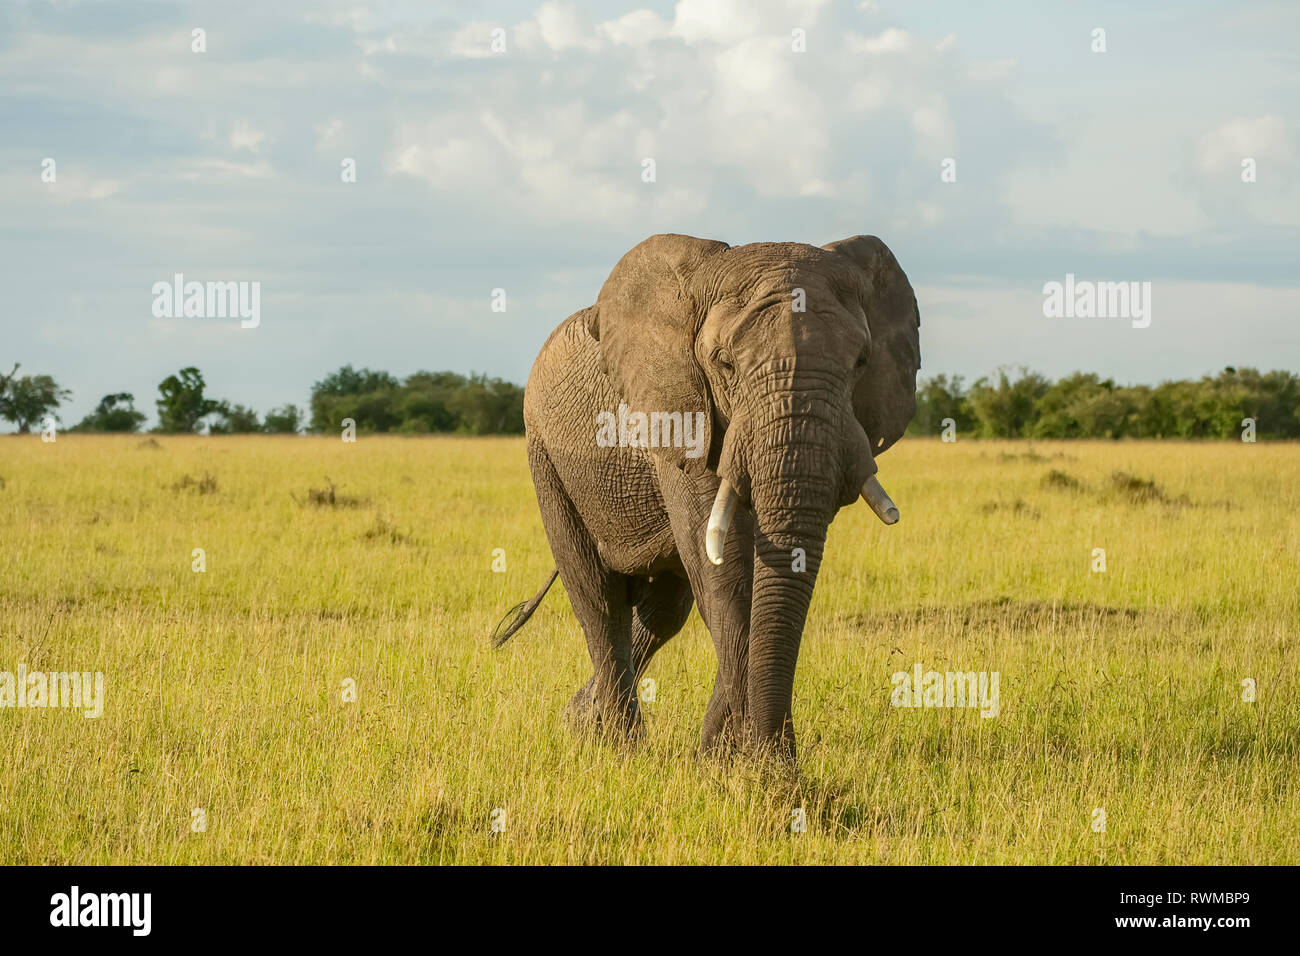 African elephant (Loxodonta) on the Serengeti; Tanzania - Stock Image